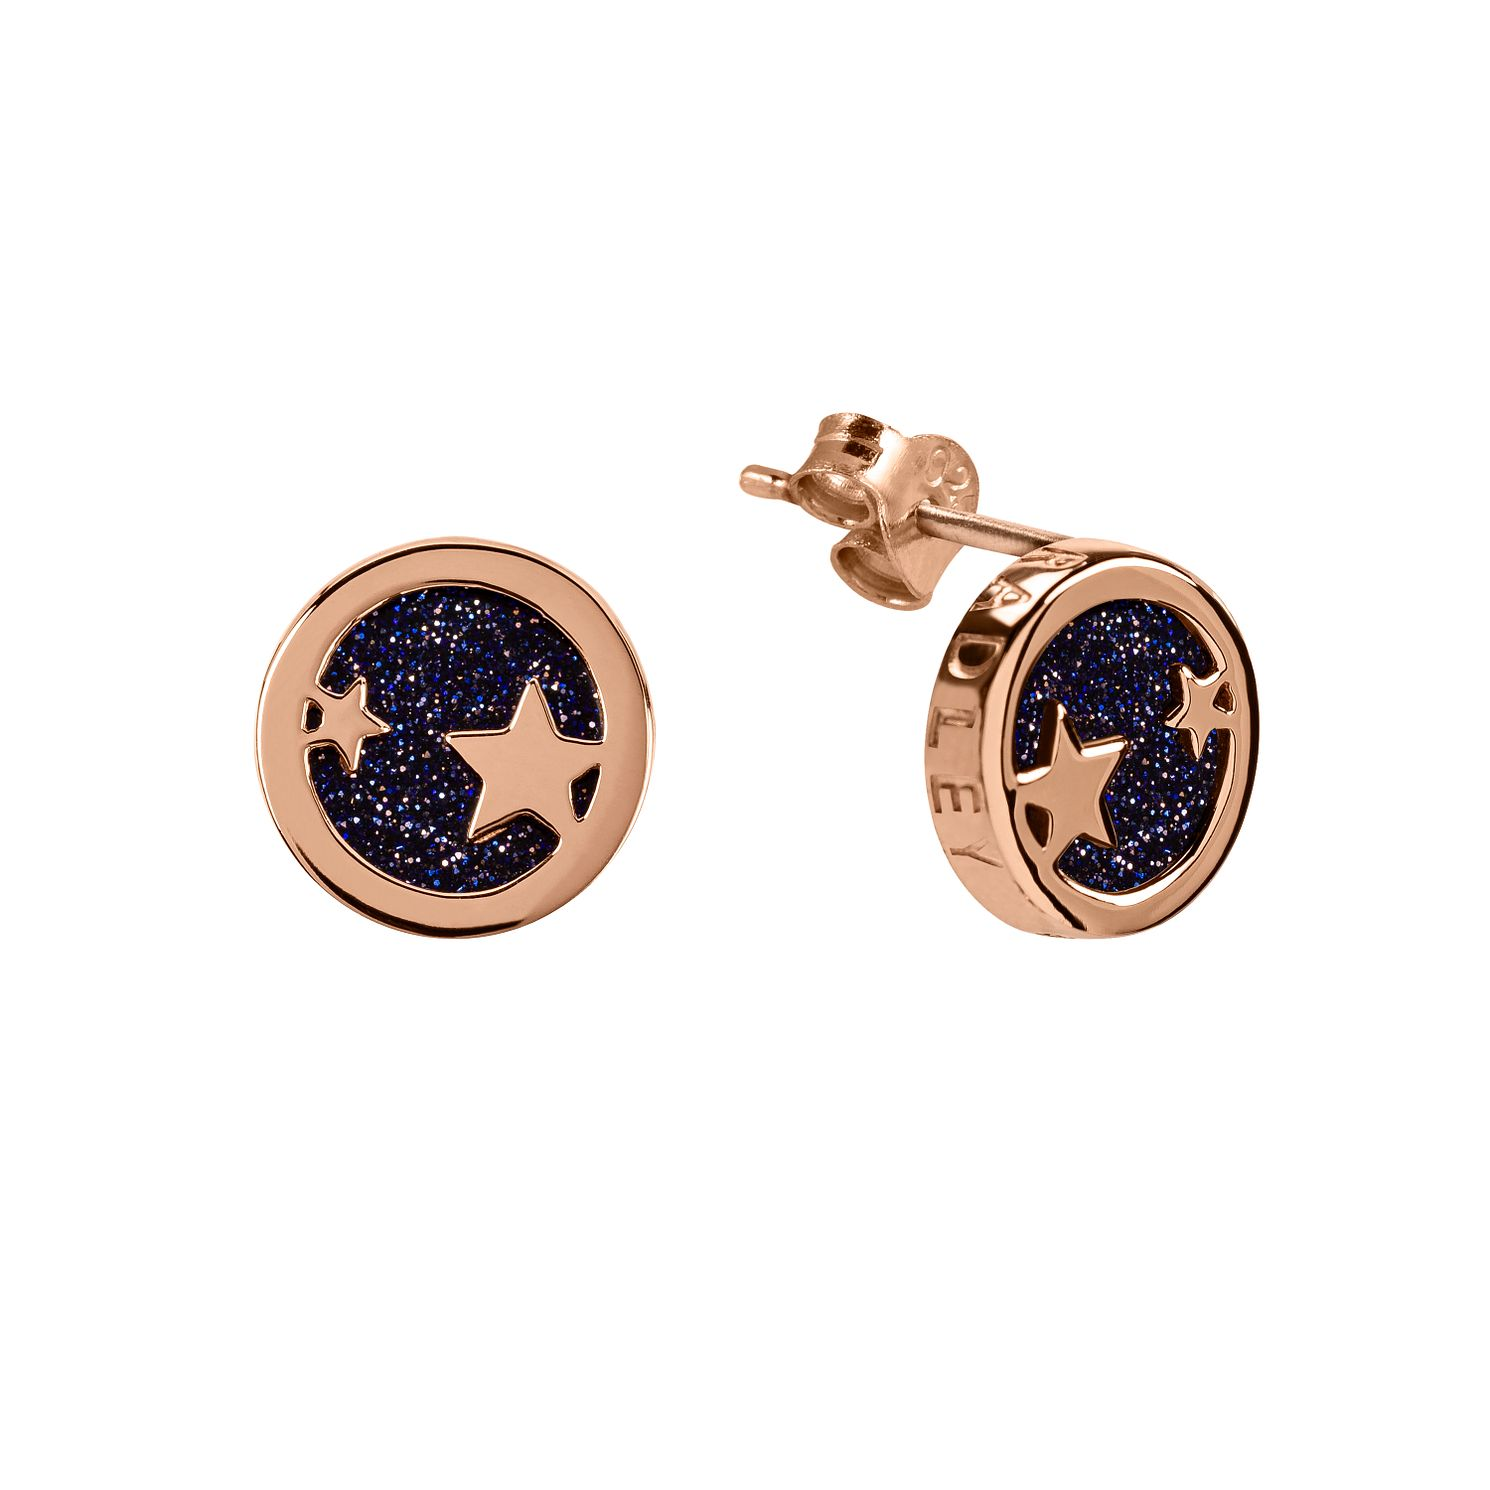 Radley Rose Gold Tone Blue Sandstone Star Stud Earrings - Product number 6088724